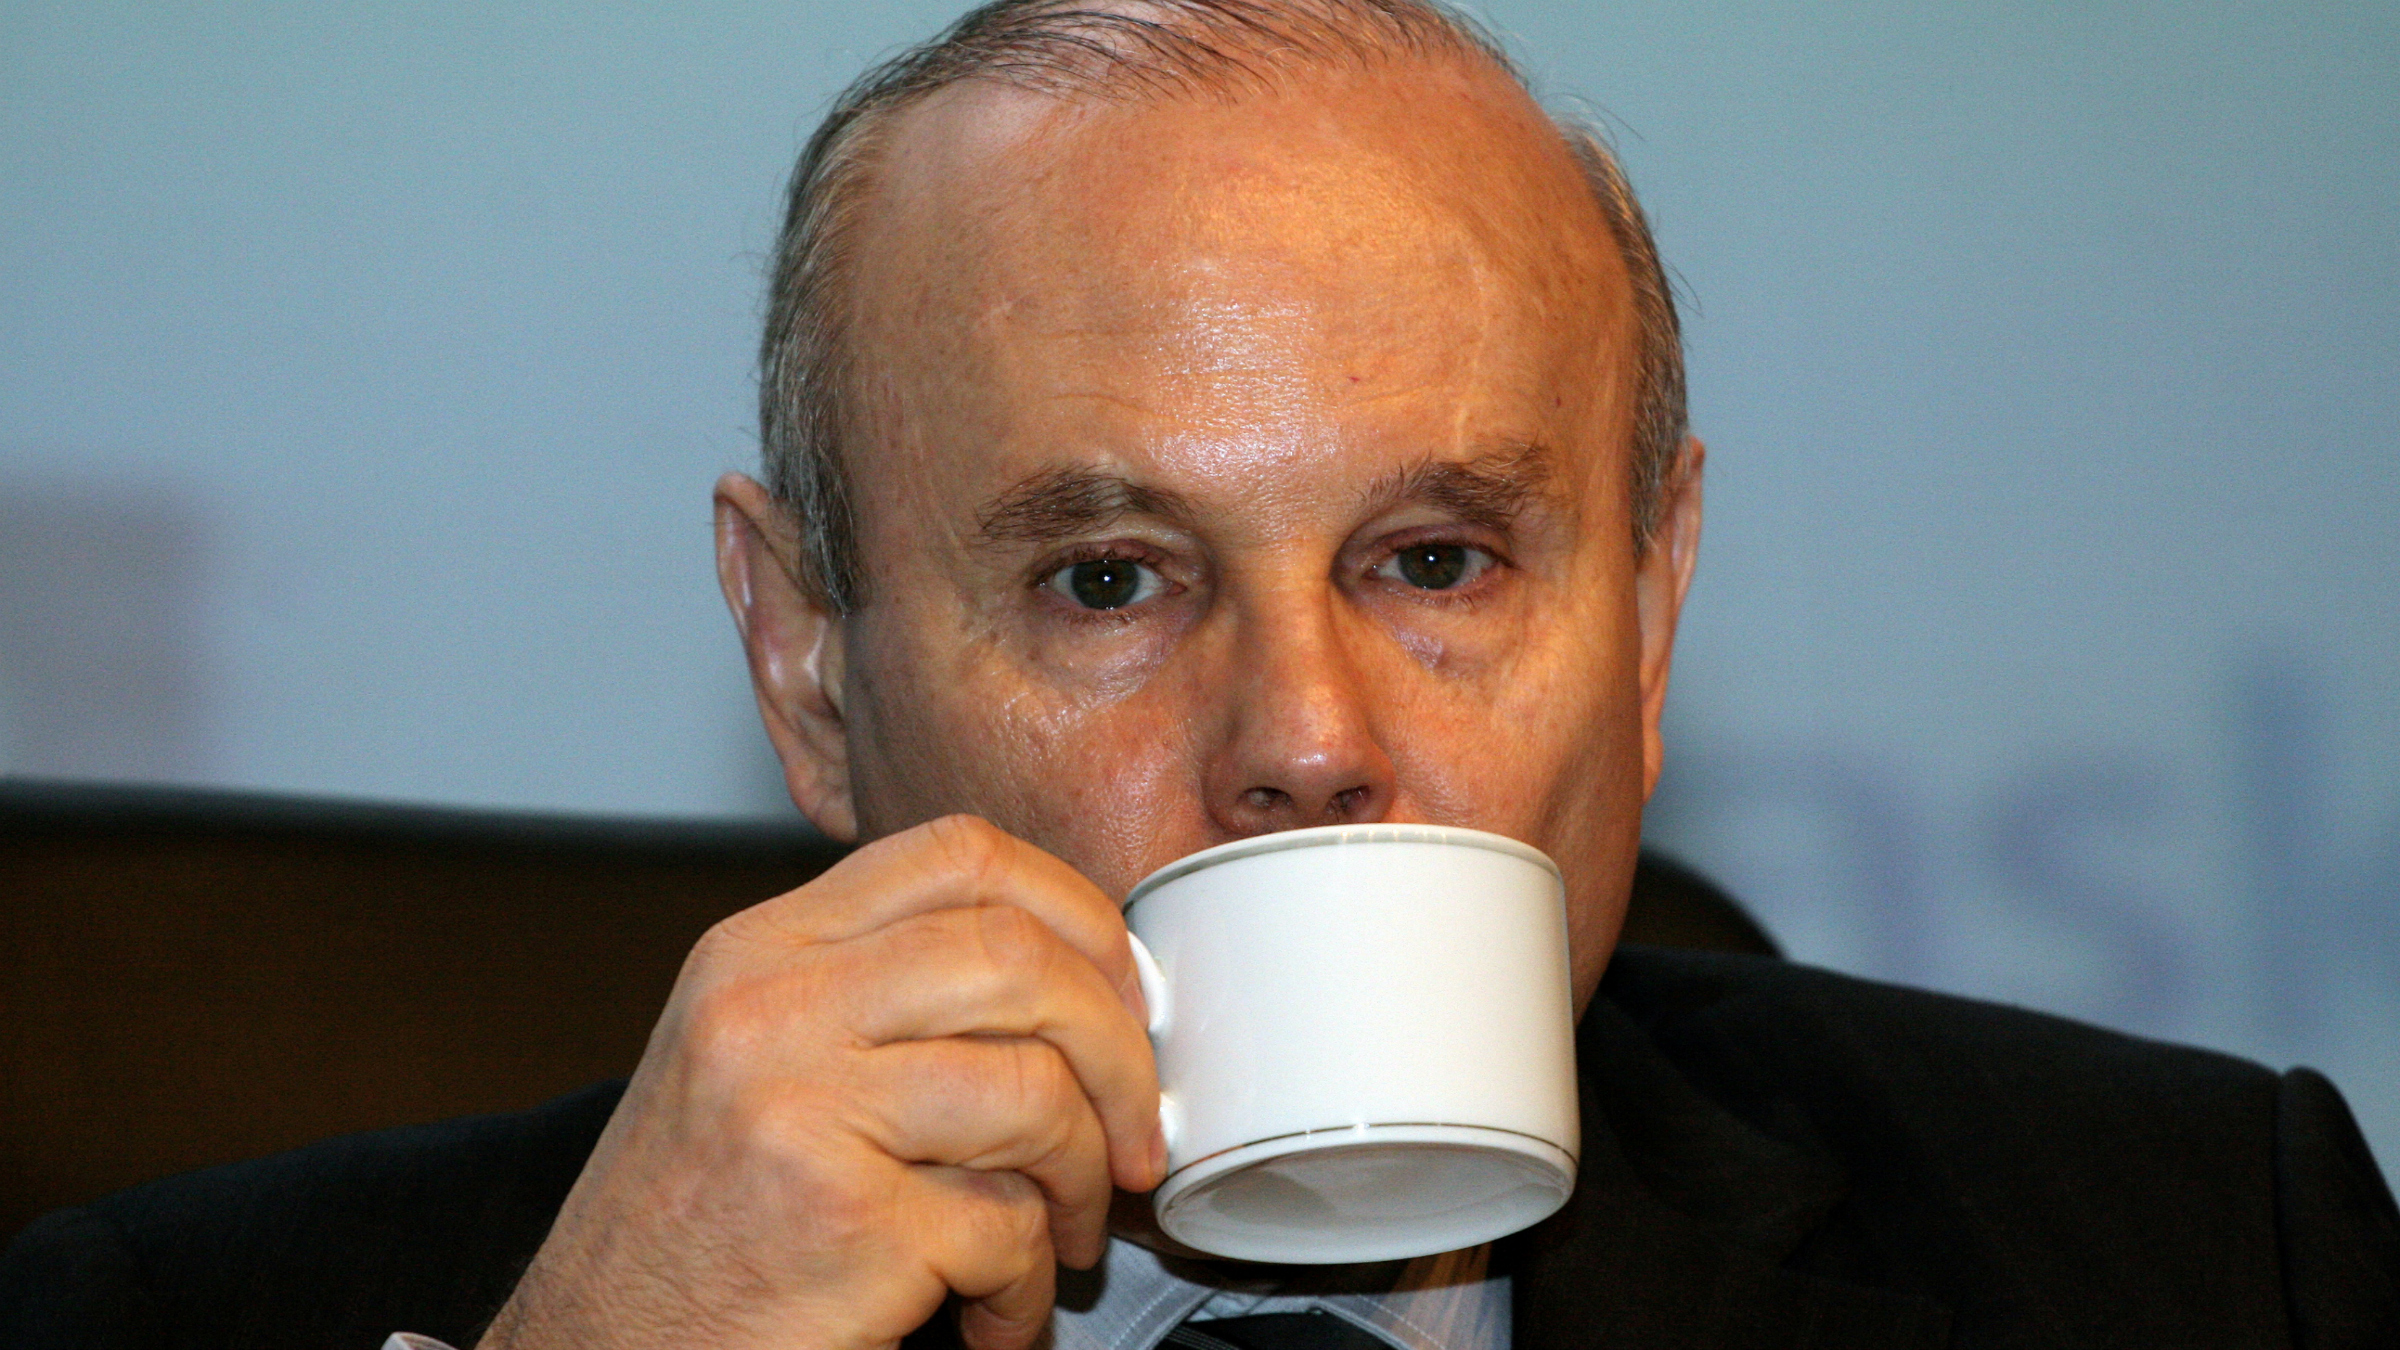 Brazilian Finance Minister Guido Mantega, hard at work.